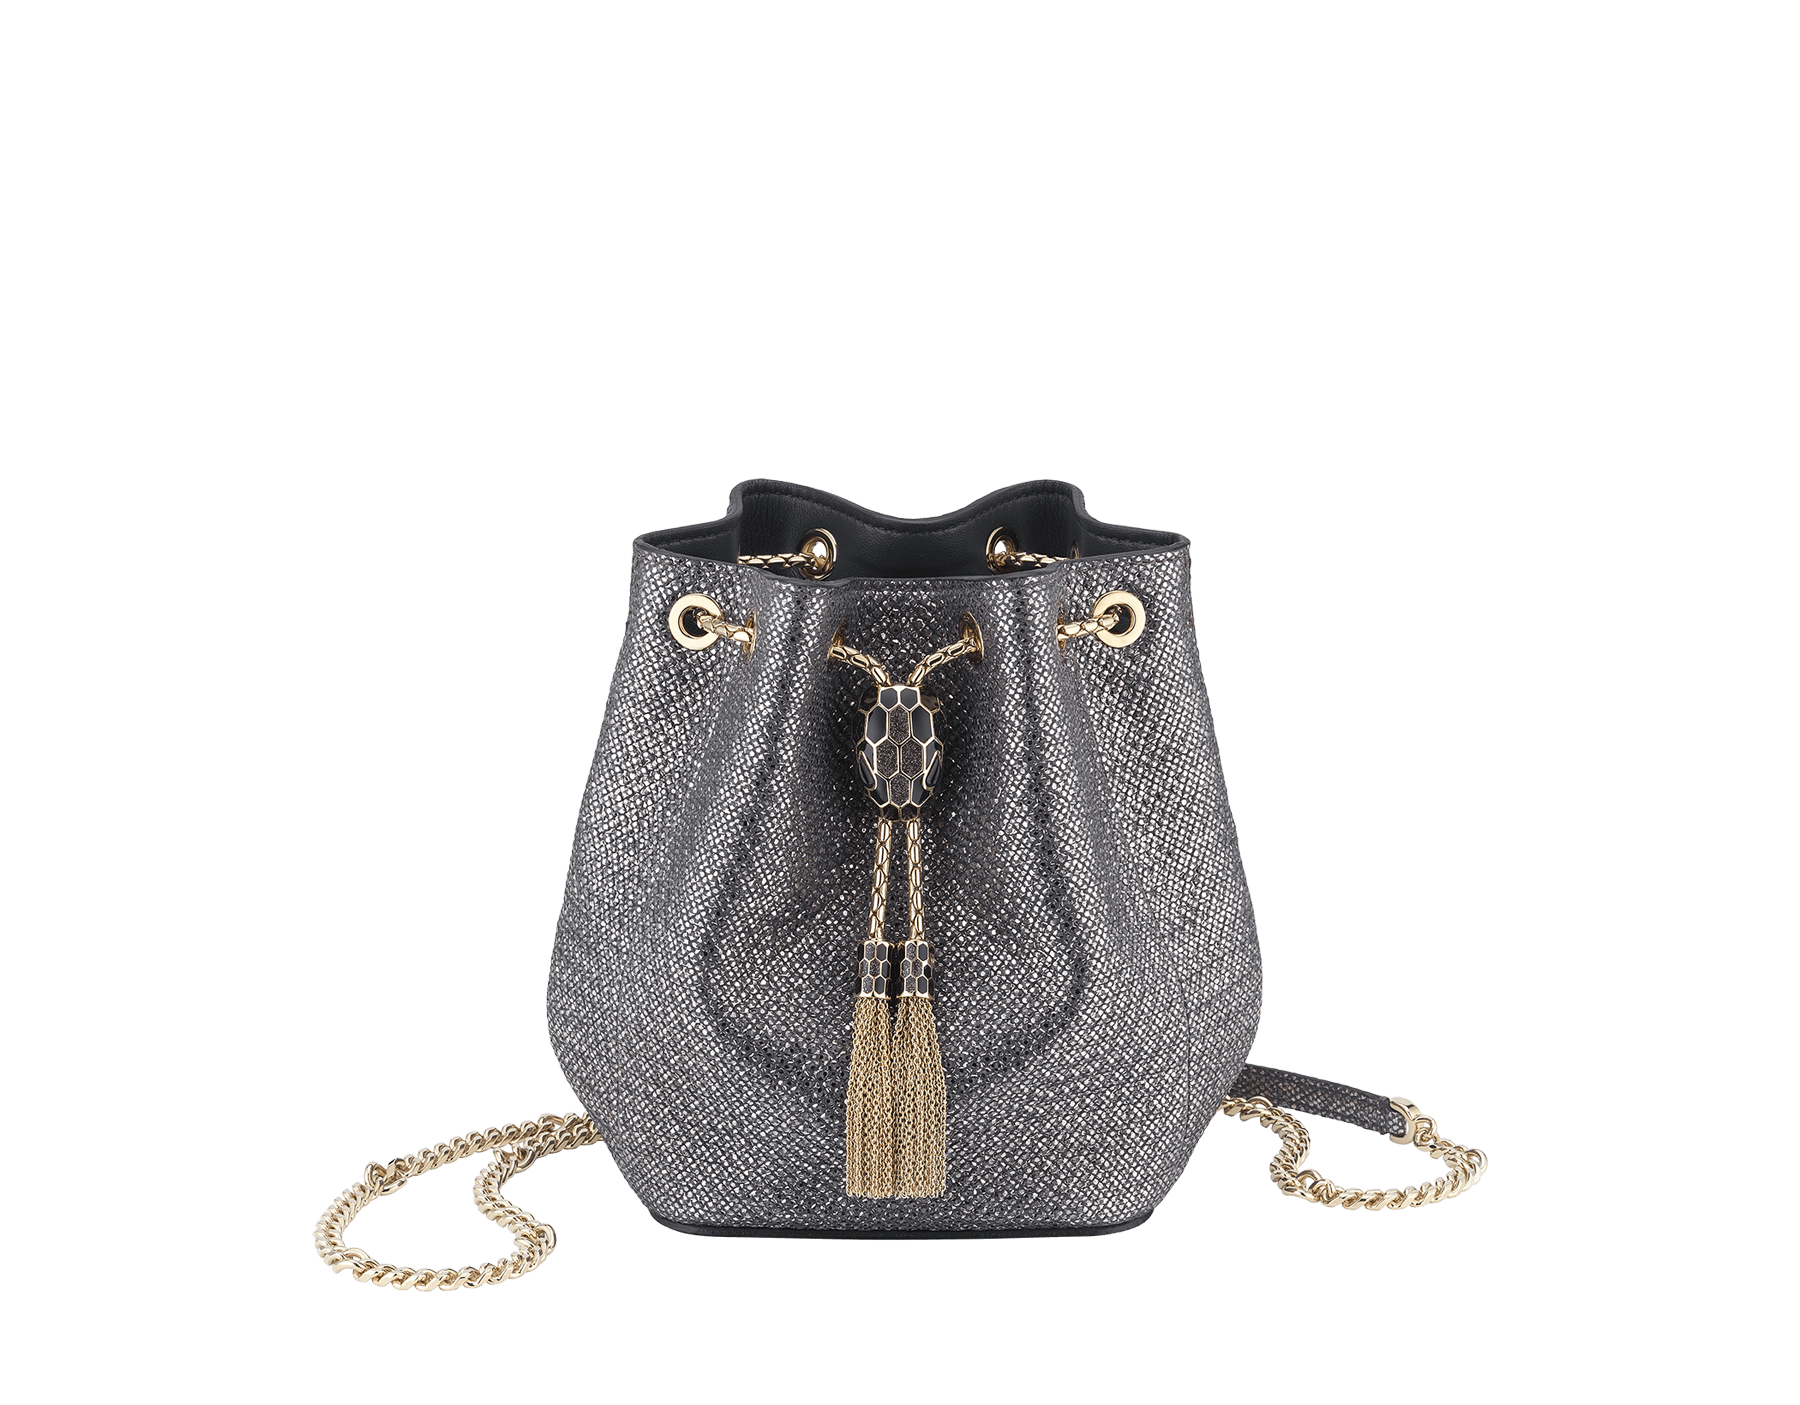 """Serpenti Forever"" micro bucket in charcoal diamond metallic karung skin and charcoal diamond nappa internal lining. Hardware in light gold plated brass and snakehead closure in black and glitter charcoal diamond enamel, with eyes in black onyx. 289948 image 1"